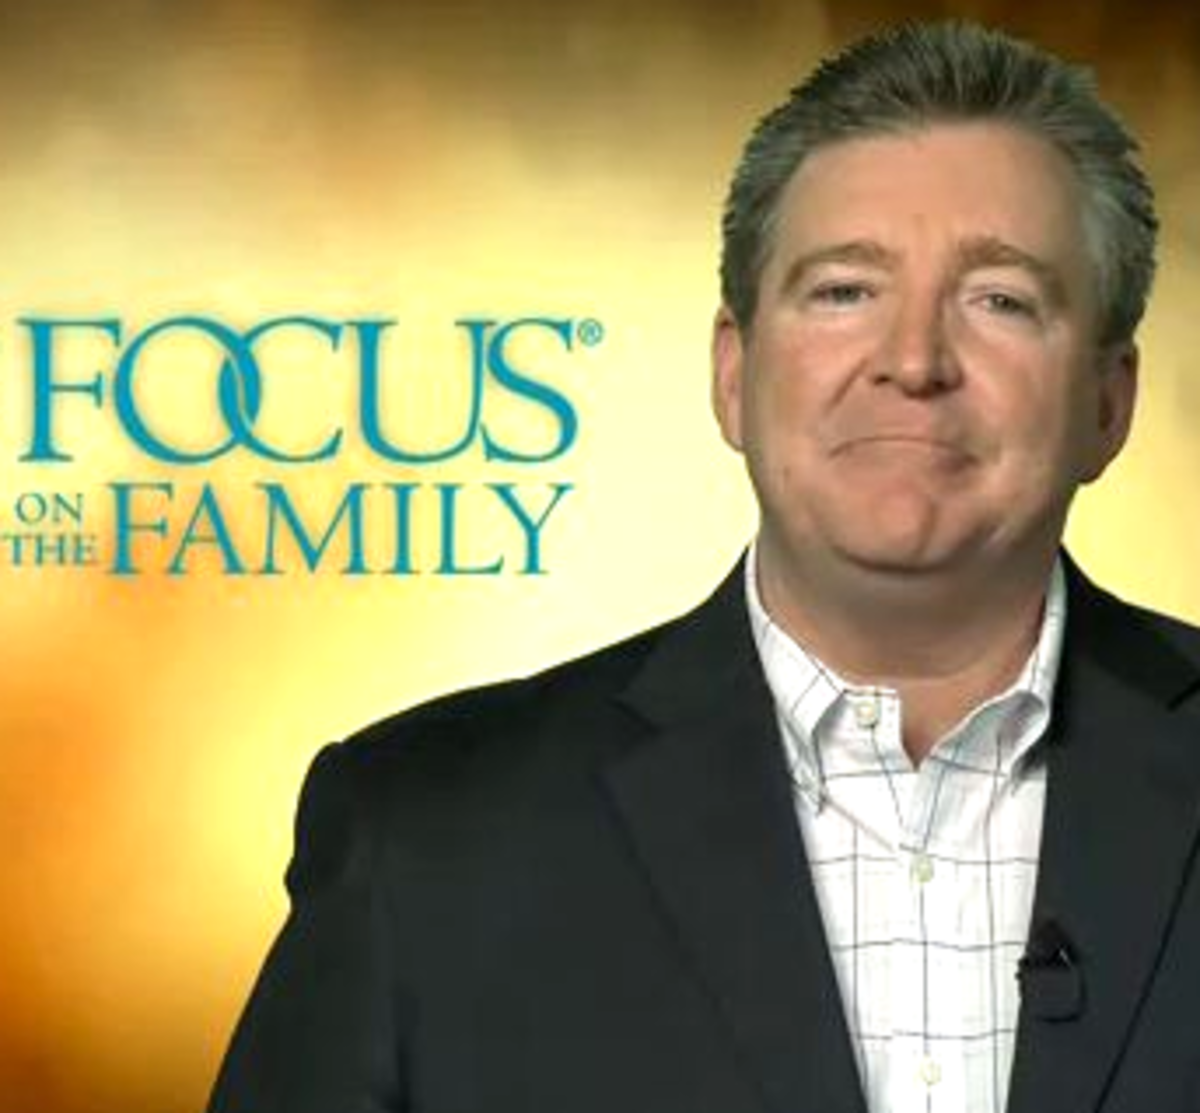 focus on gay Co founder family